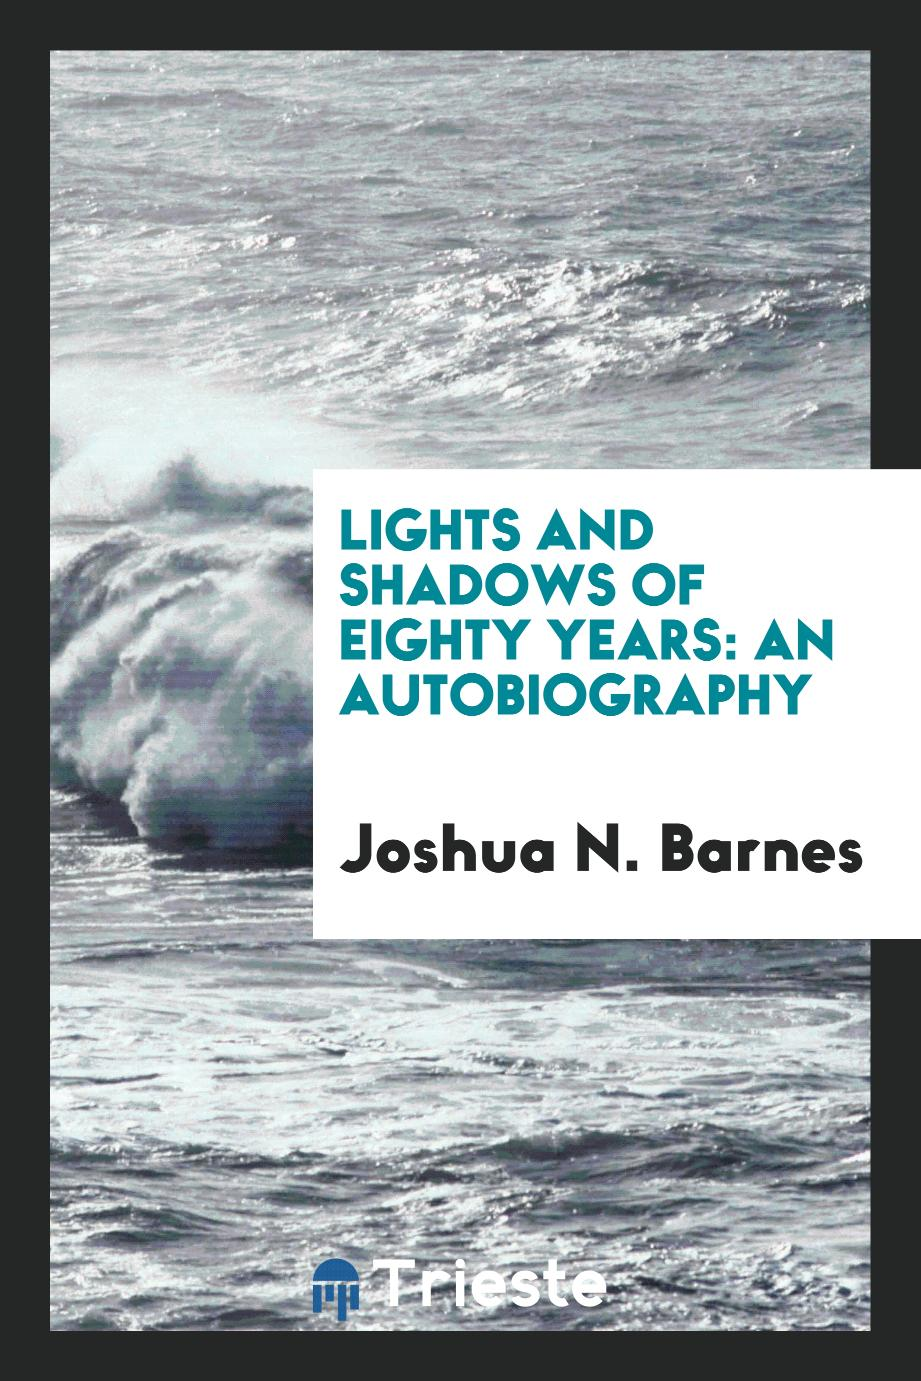 Lights and shadows of eighty years: an autobiography